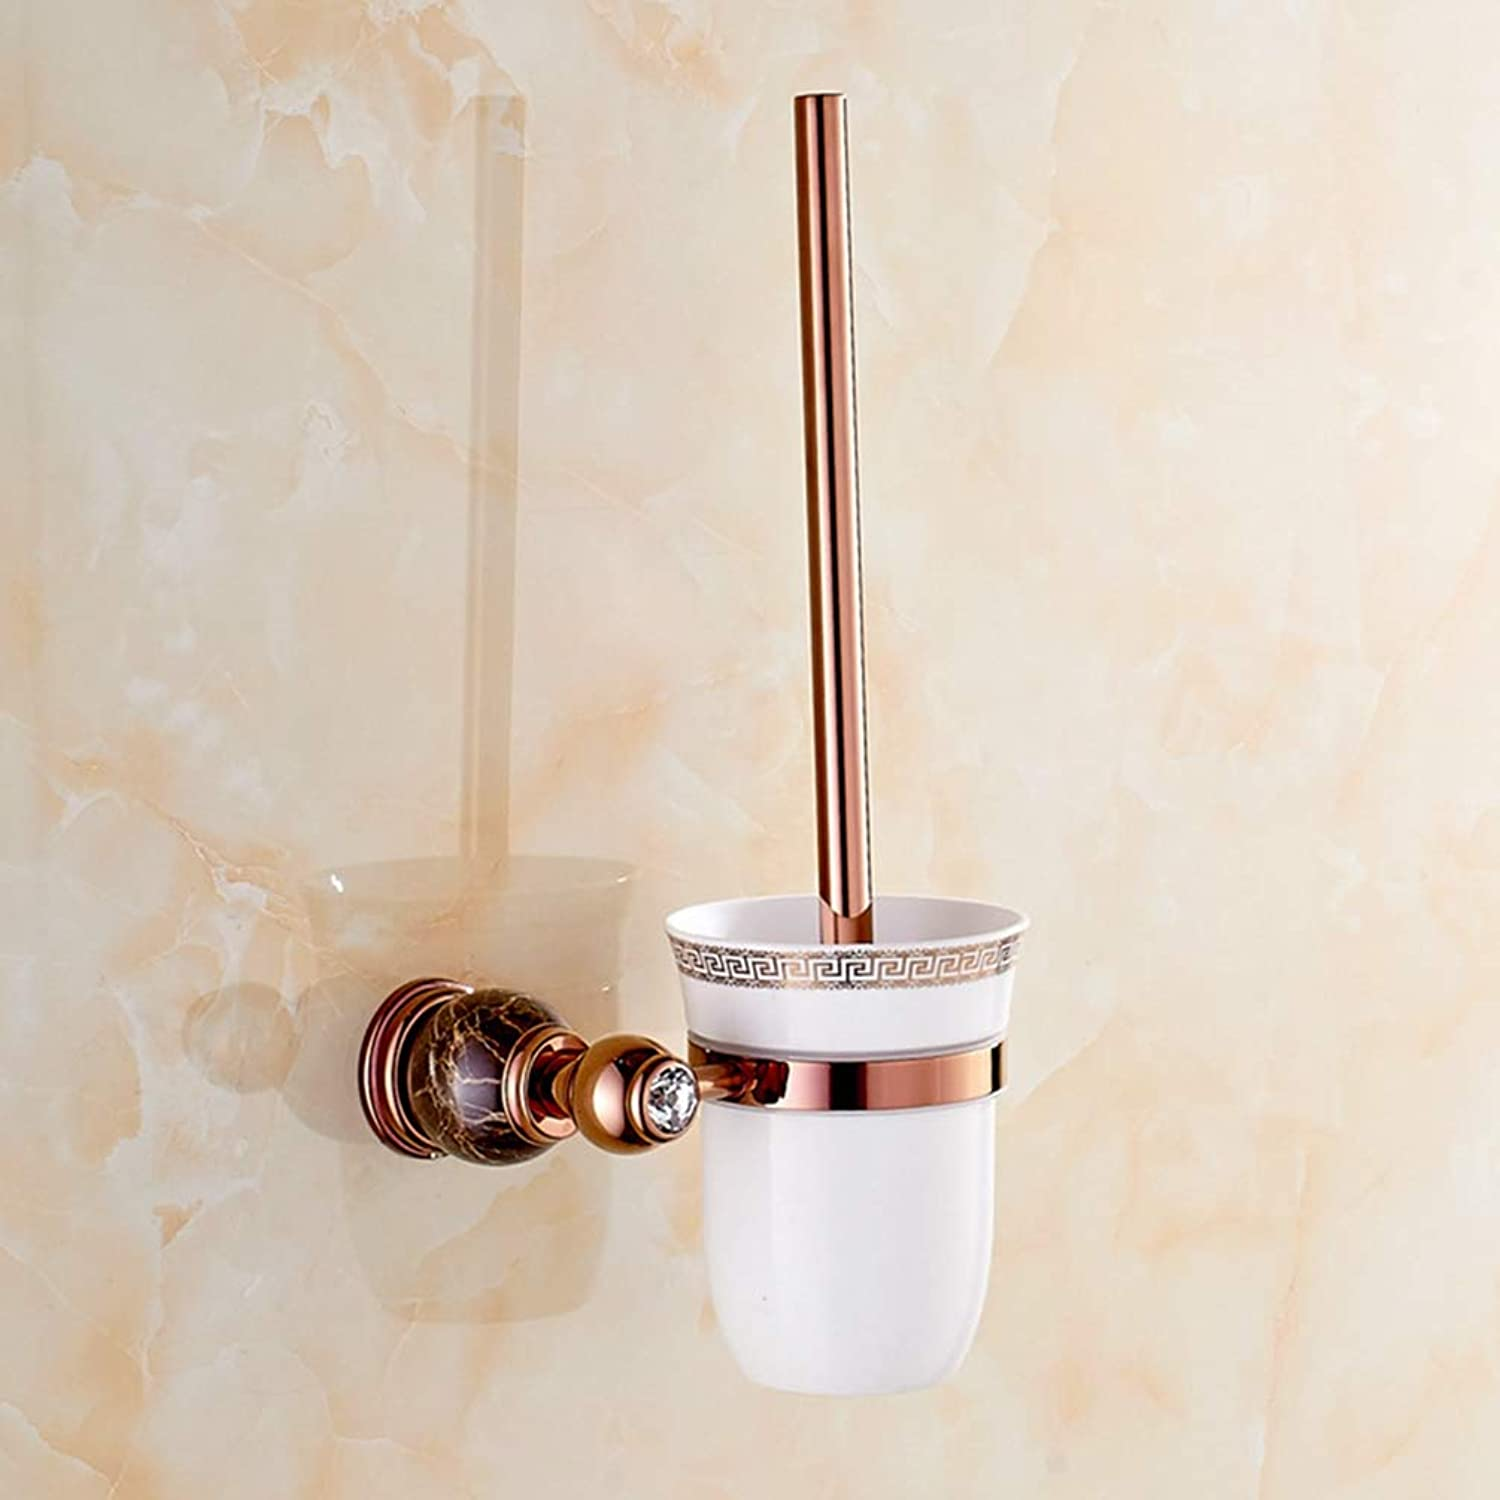 LUDSUY Bathroom accessoriesCopper pink gold Natural Jade Bathroom Toilet Cup Holder with Cup Holders Bathroom Marble, B